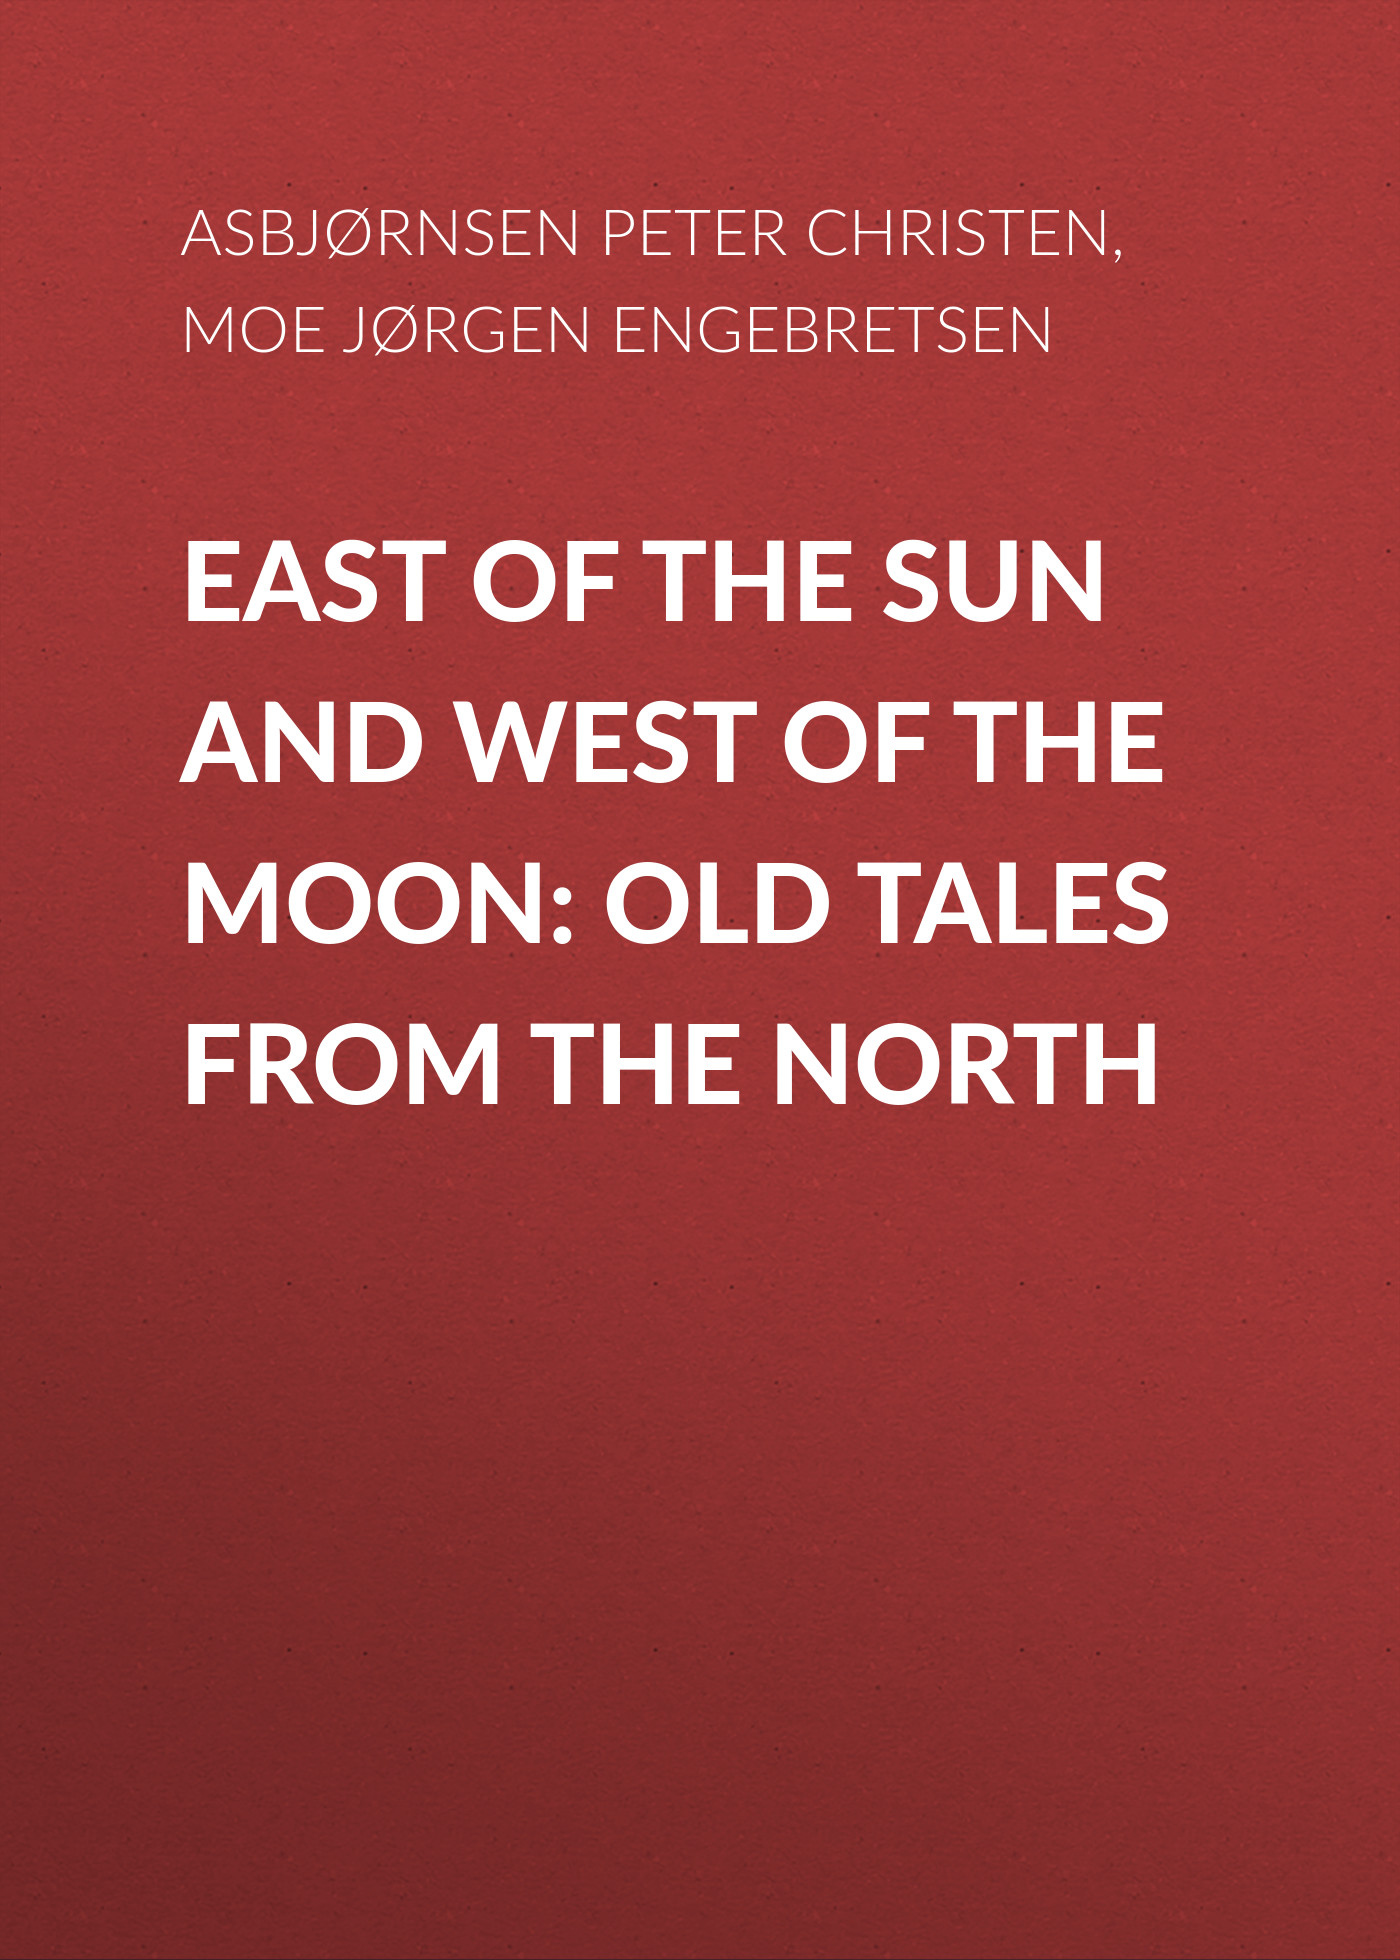 Asbjørnsen Peter Christen East of the Sun and West of the Moon: Old Tales from the North батарея аккумуляторная varta aaa r2u 800 мач 4 шт